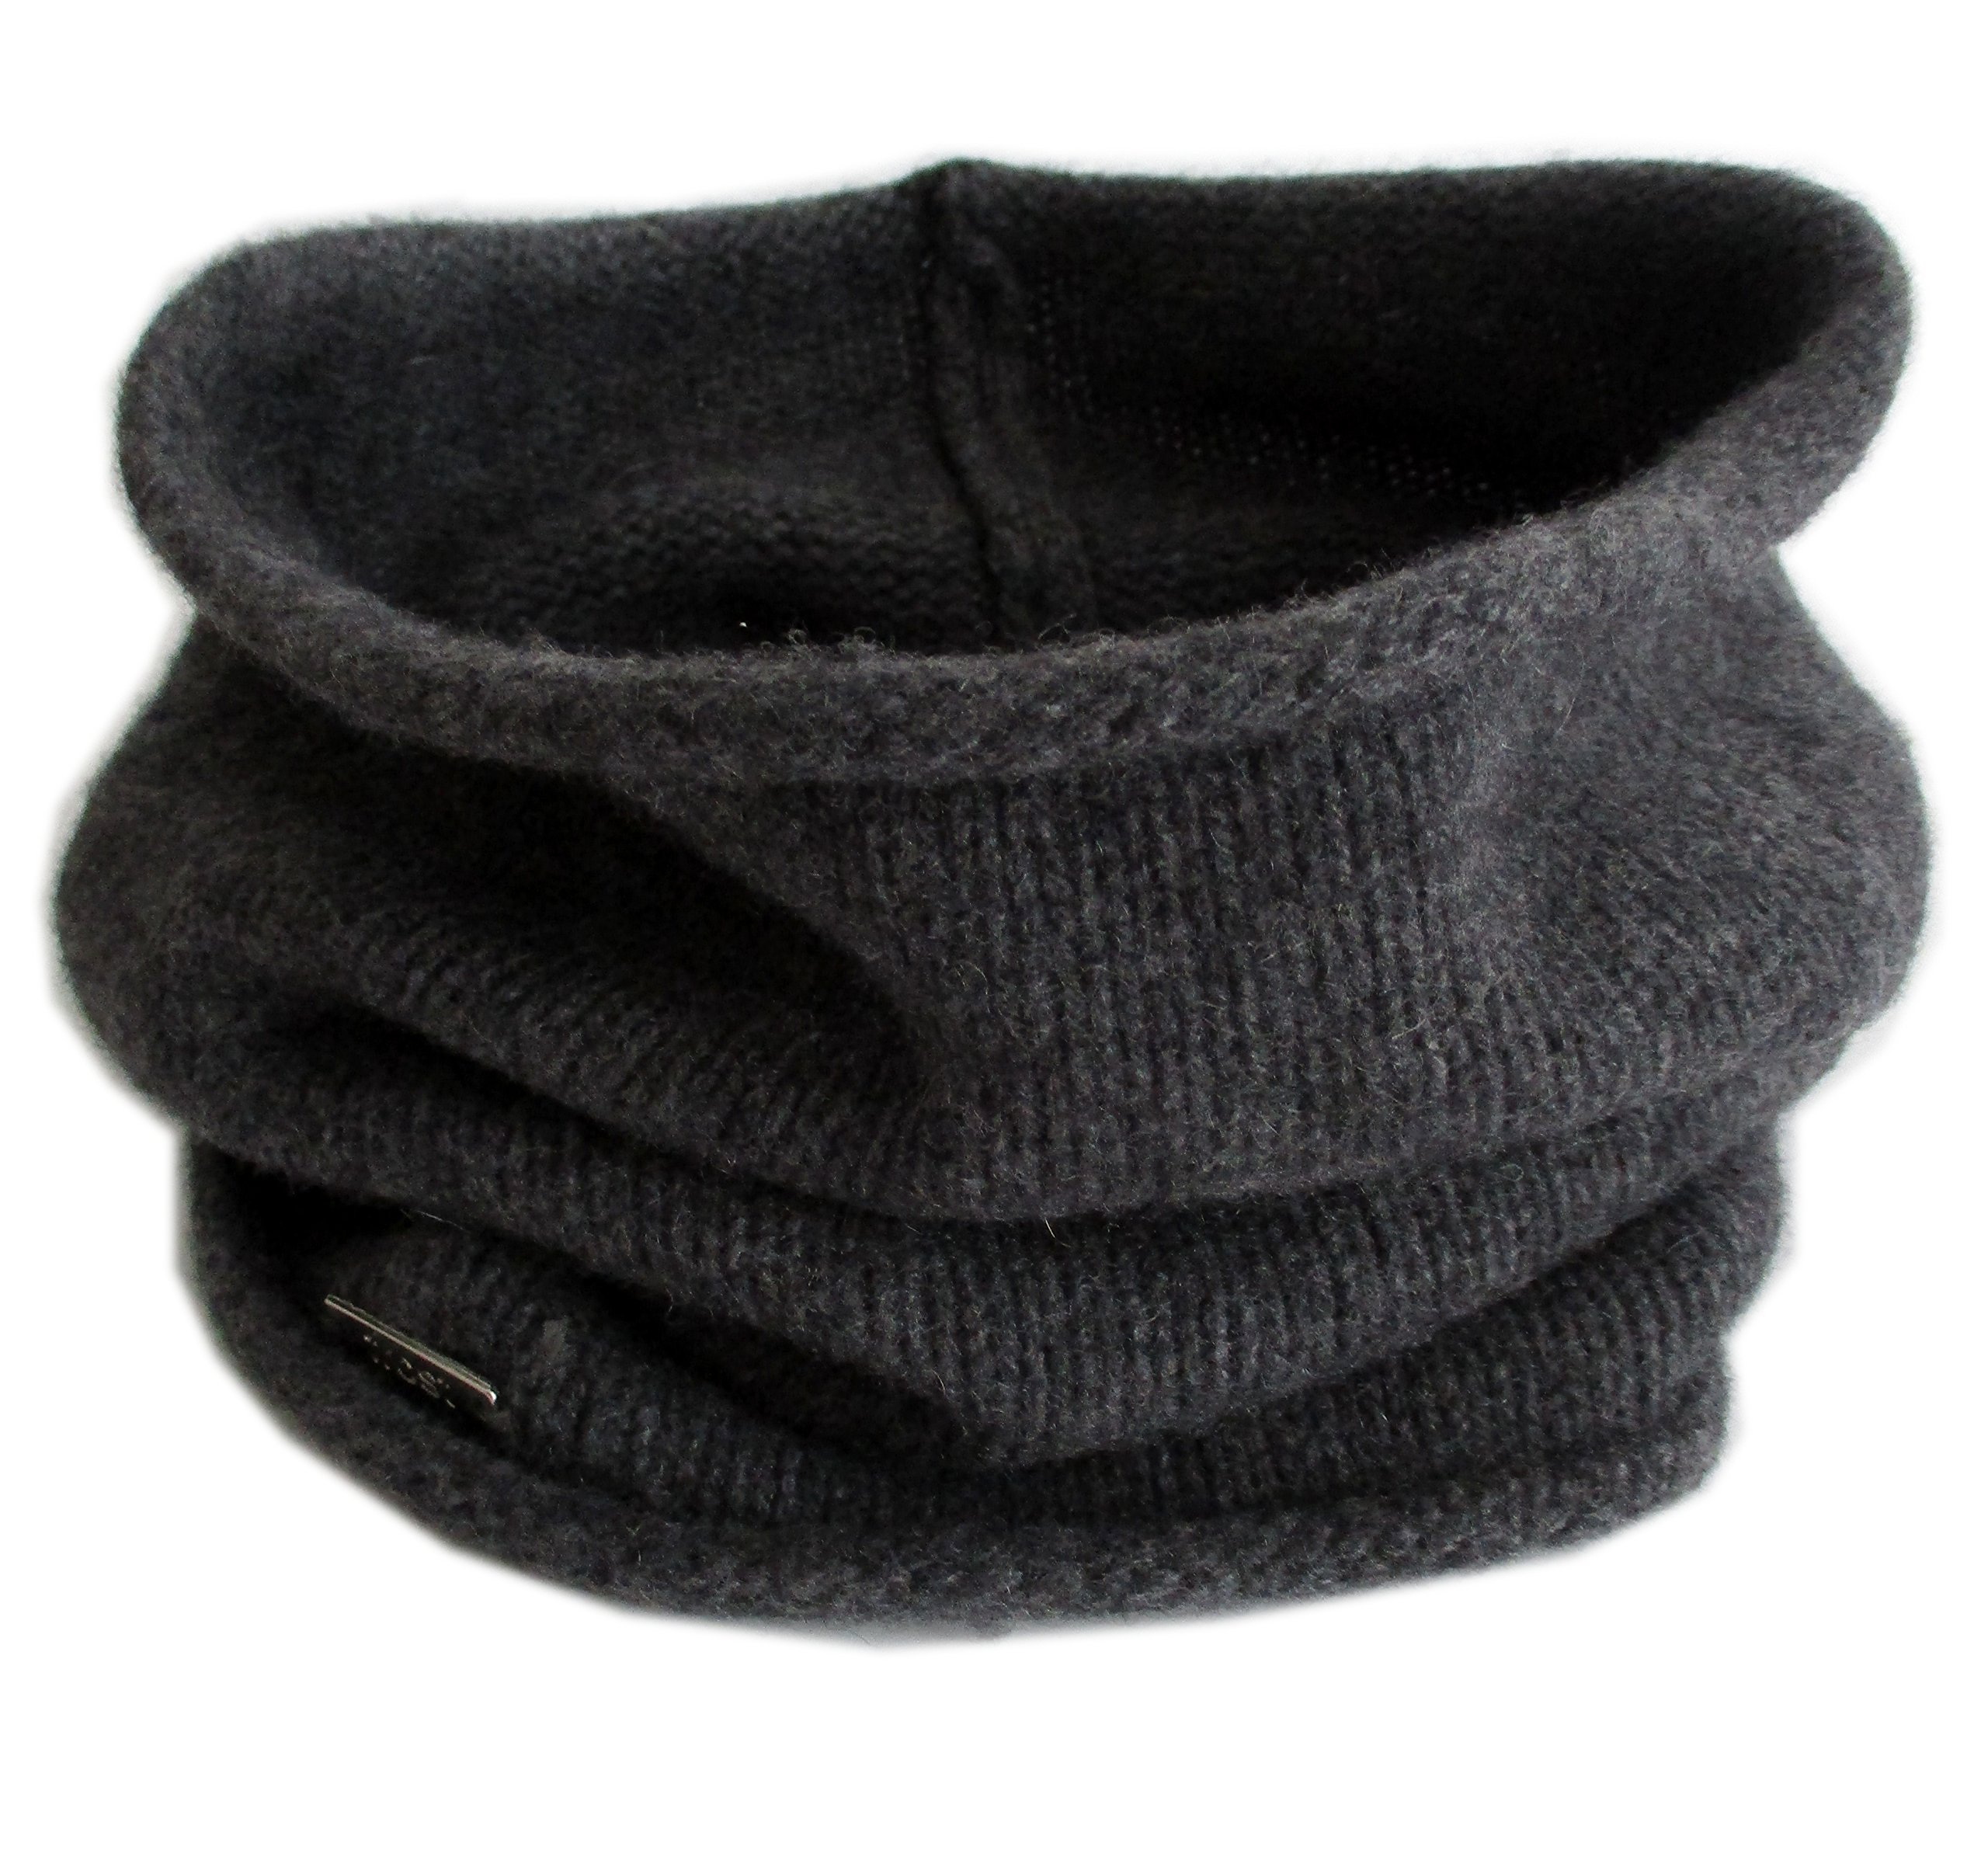 Frost Hats Cashmere Neck Warmer CSH-891 Charcoal by Frost Hats